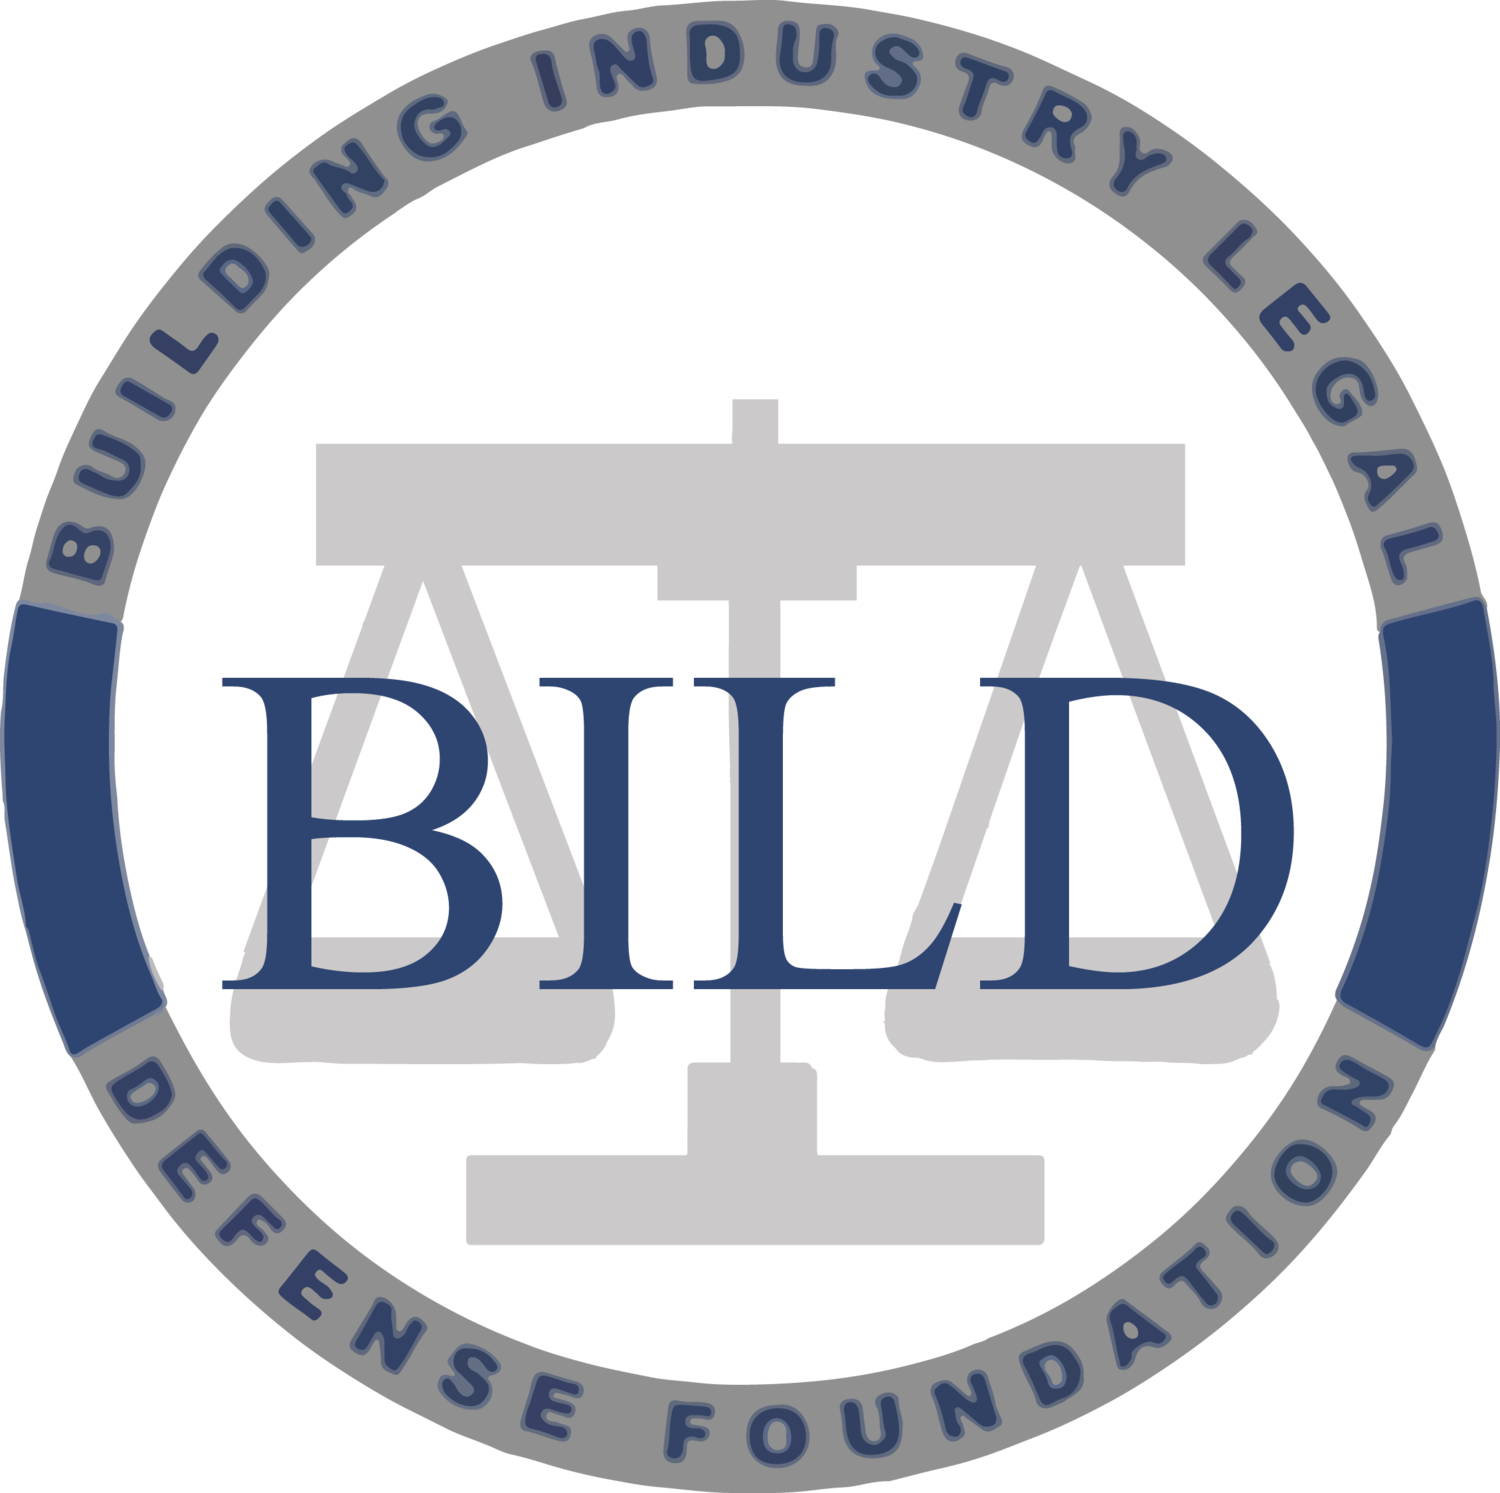 Building Industry Legal Defense Foundation (BILD)